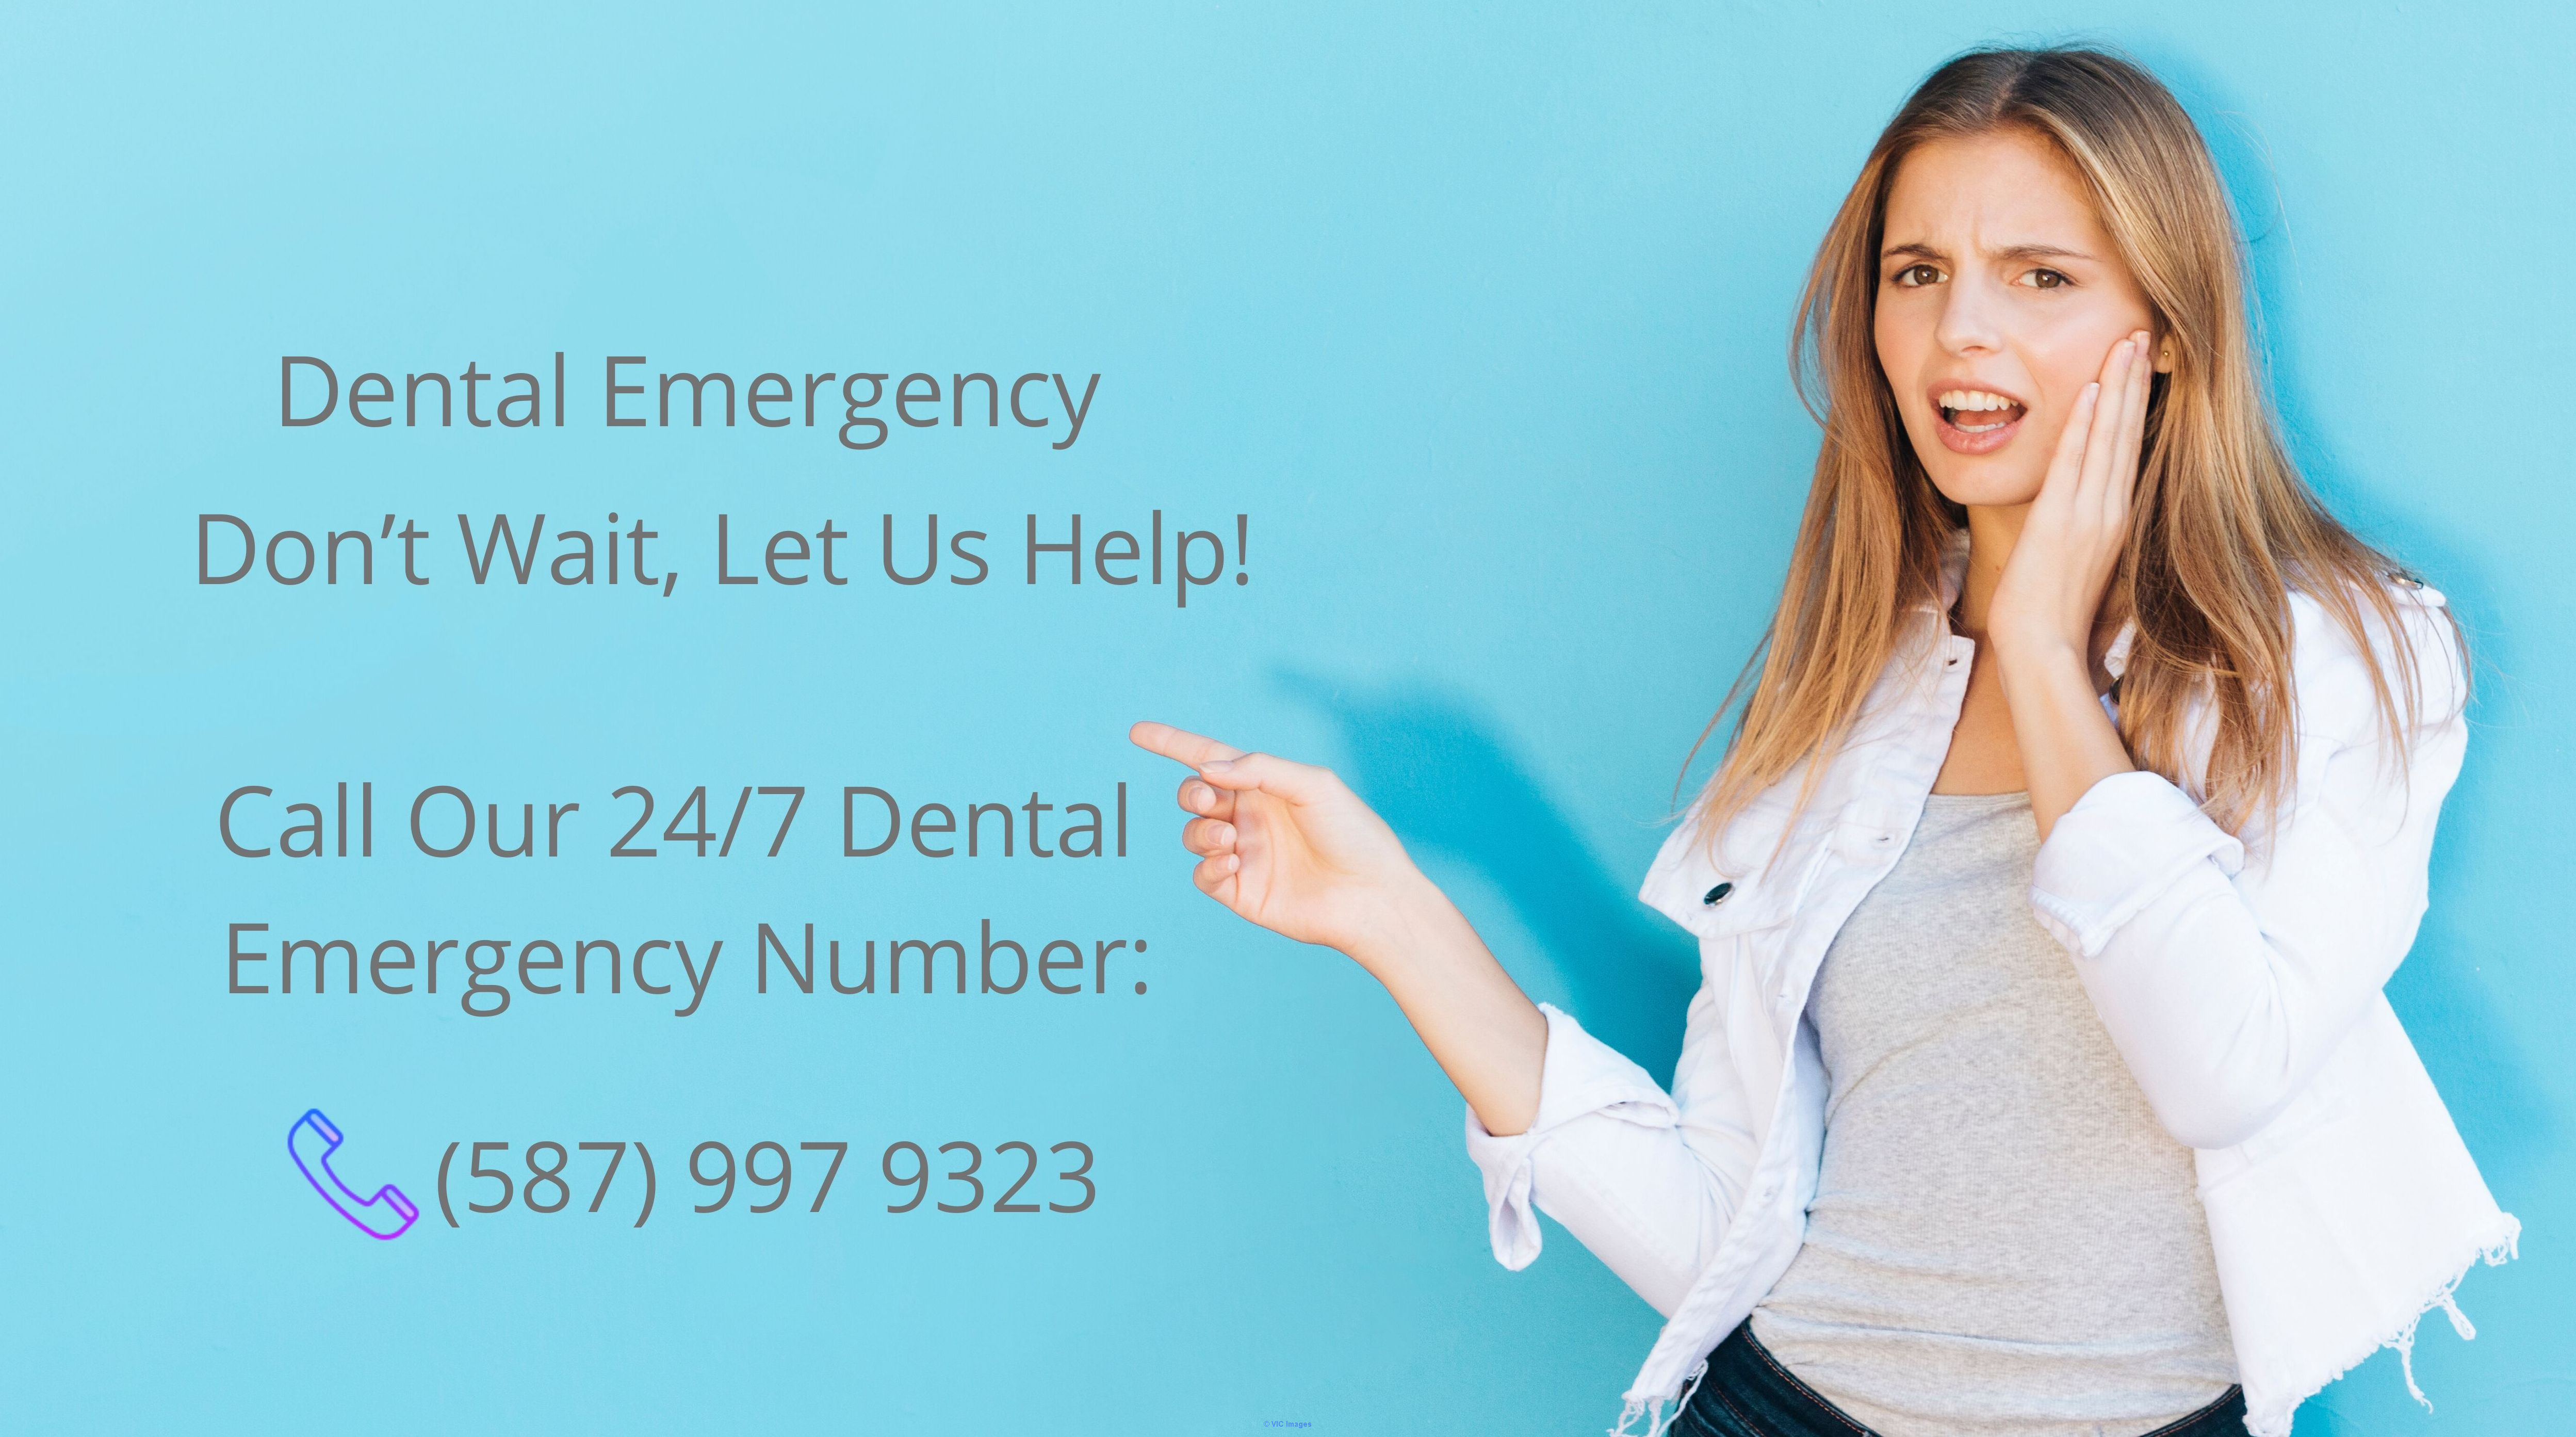 Need An Emergency Dentist in Calgary AB?